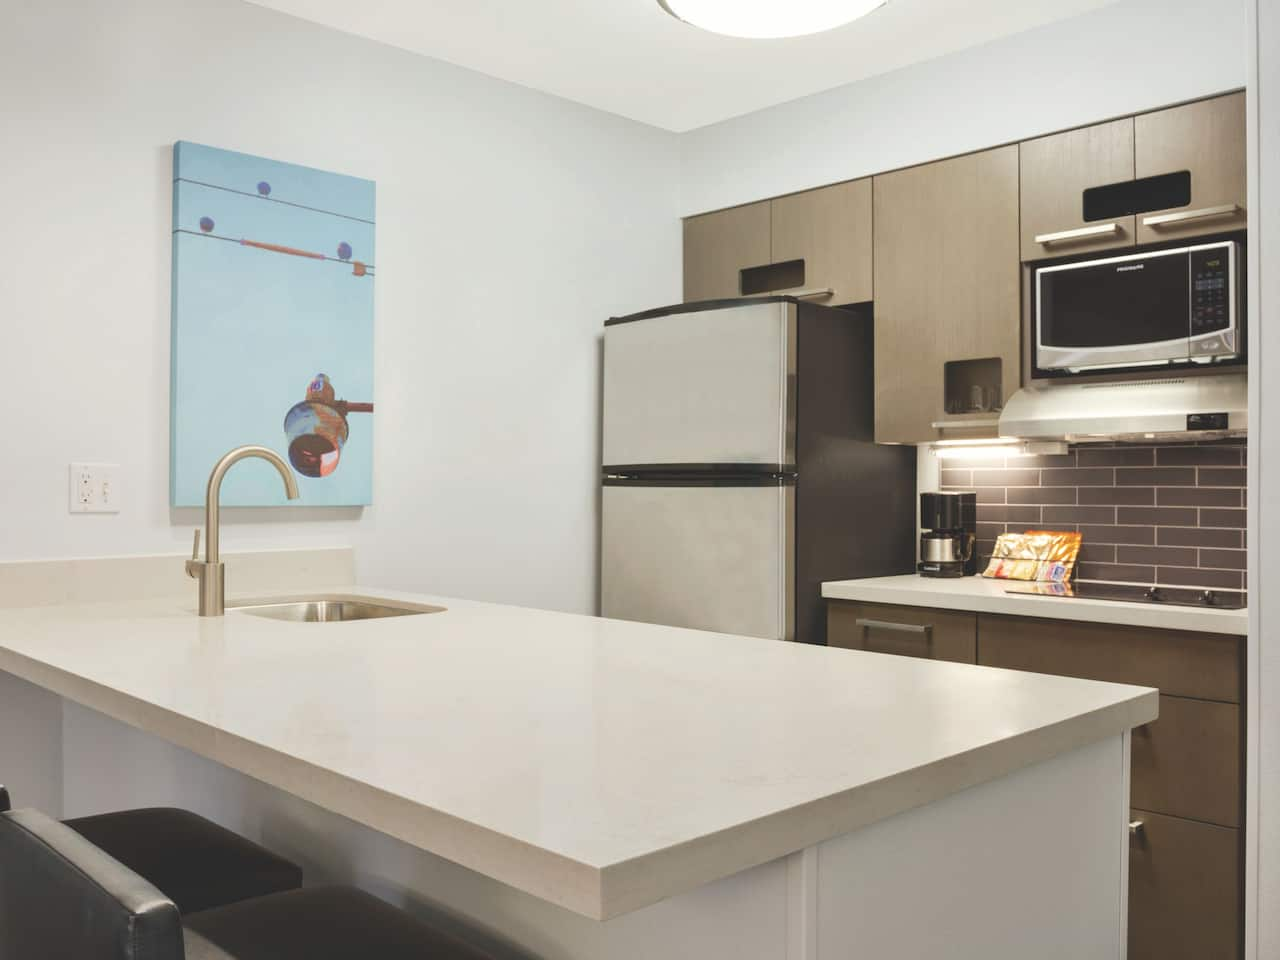 5.	Hyatt House Cypress/Anaheim Hotel Kitchen Suite